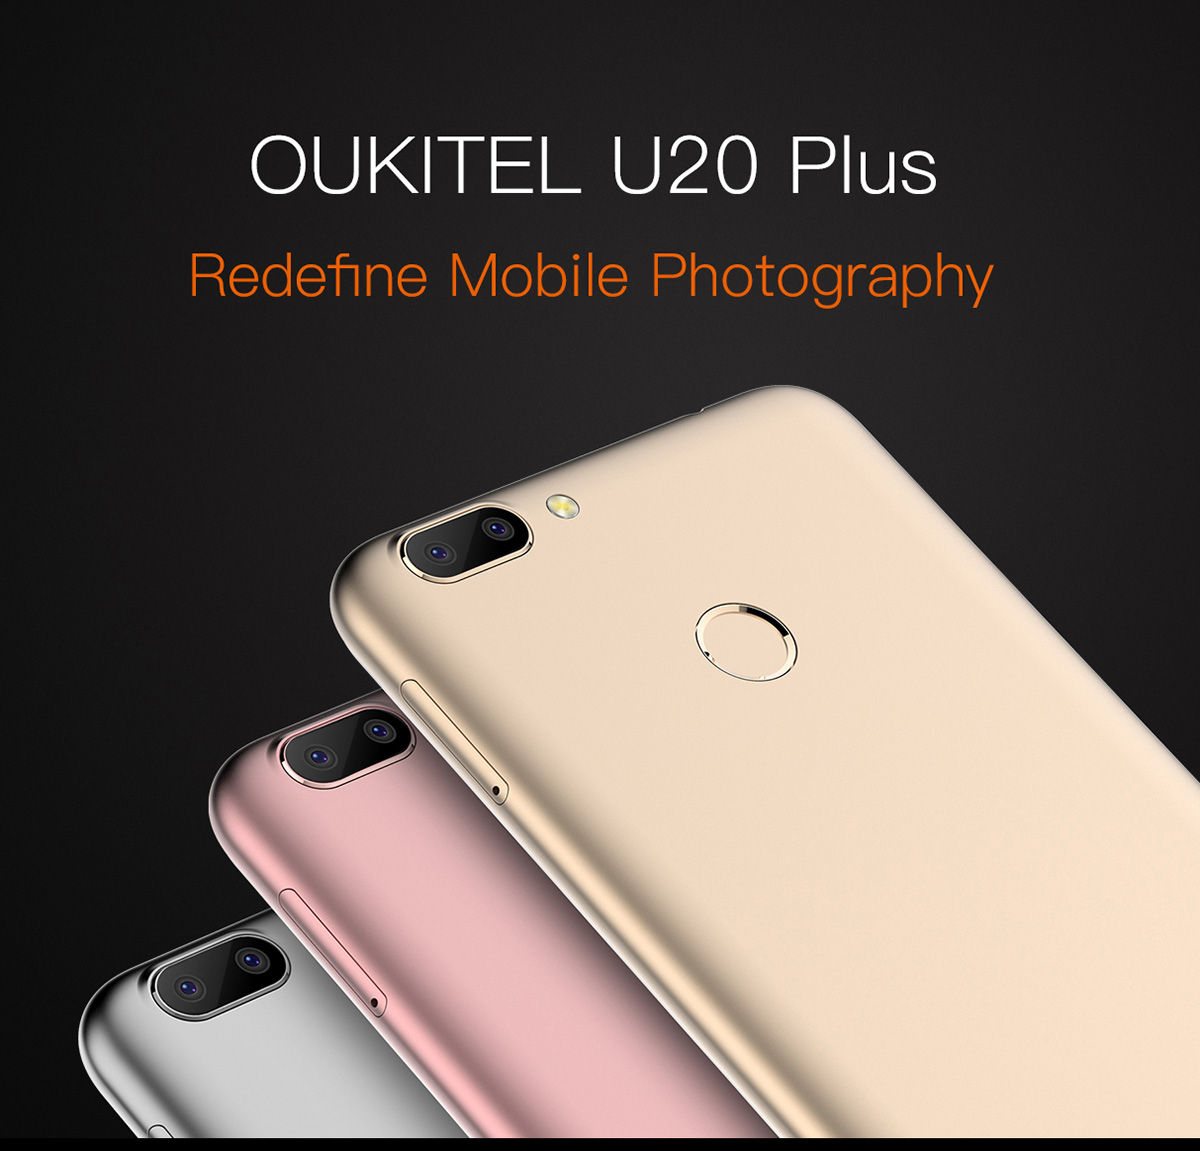 OUKITEL U20 Plus 4G Phablet 5.5 inch IPS Screen Android 6.0 MTK6737T Quad Core 1.5GHz 2GB RAM 16GB ROM 5MP + 13MP Cameras Fingerprint Sensor